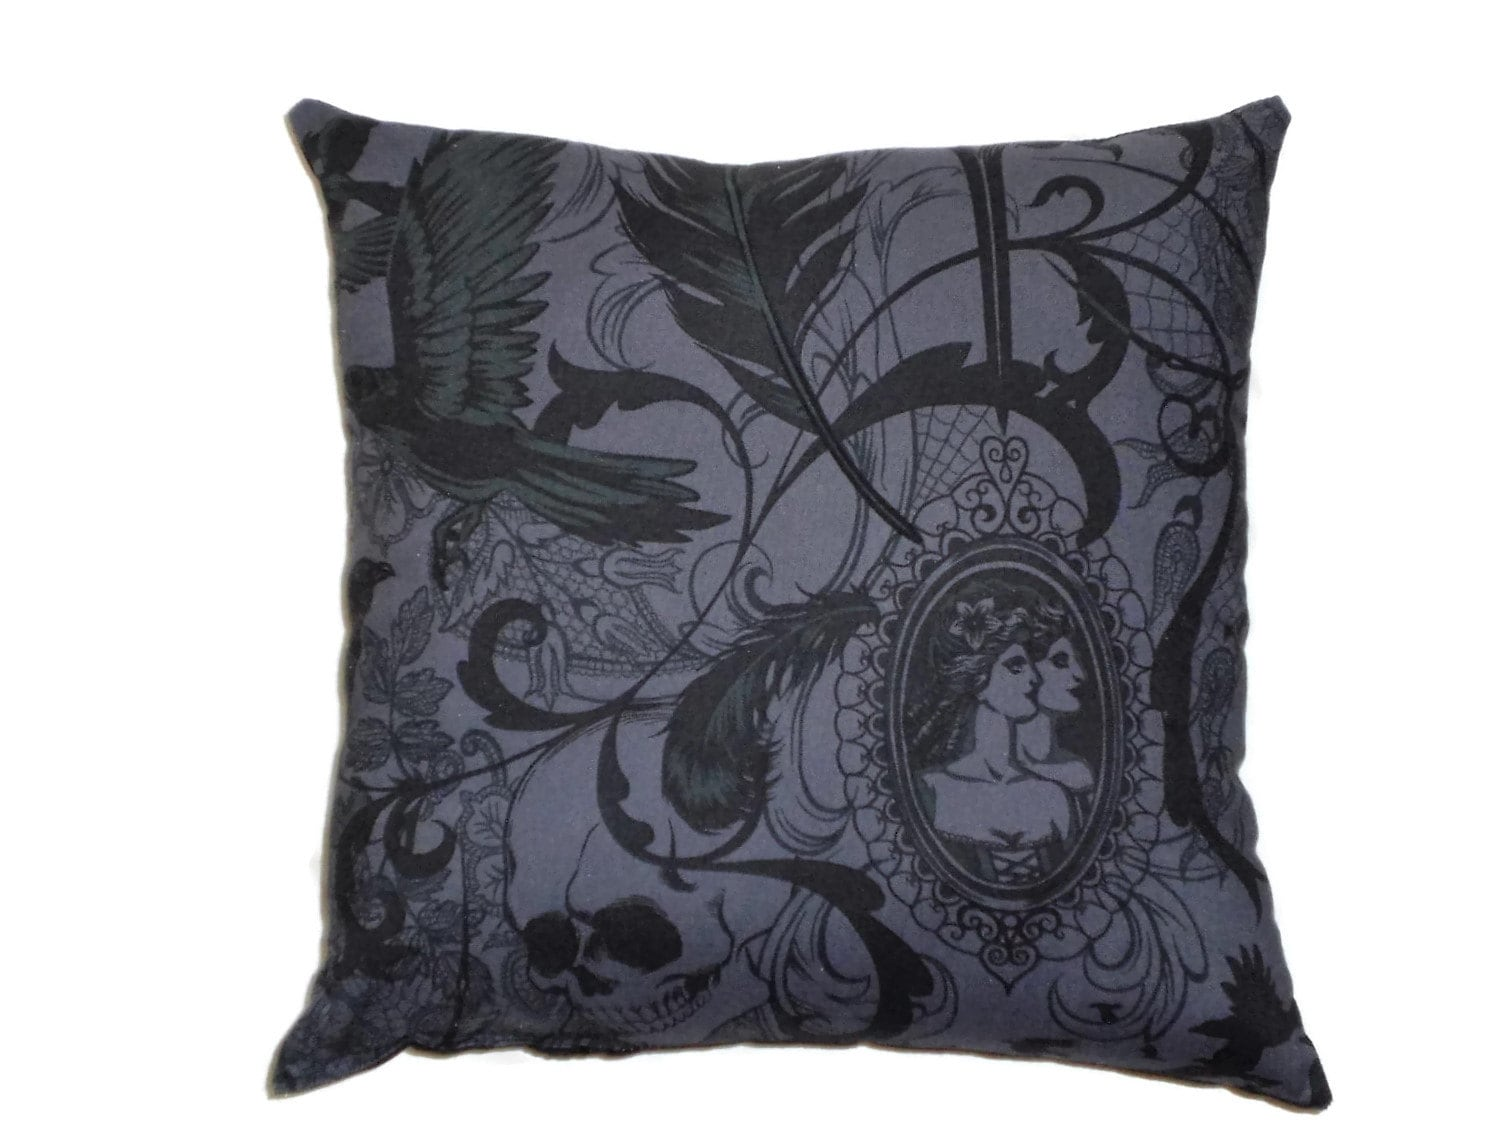 Victorian Gothic Decorative Throw Pillow Steampunk Home Decor